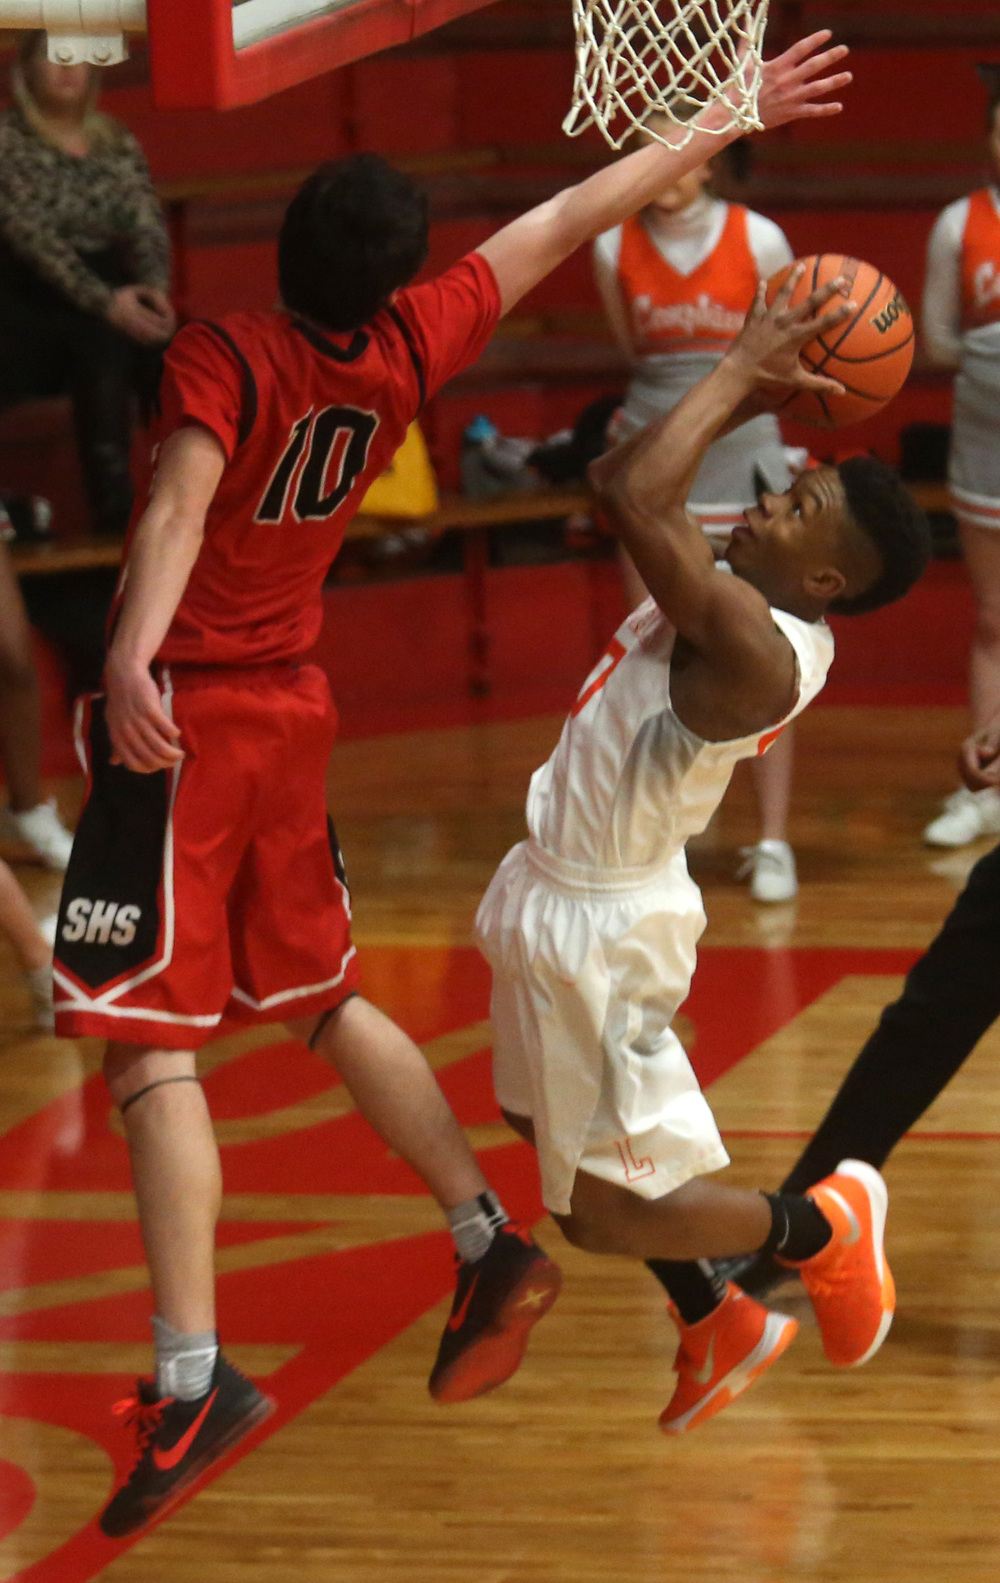 Lanphier's Jayden Collins goes airborne while putting up two points in the second half. David Spencer/The State Journal Register